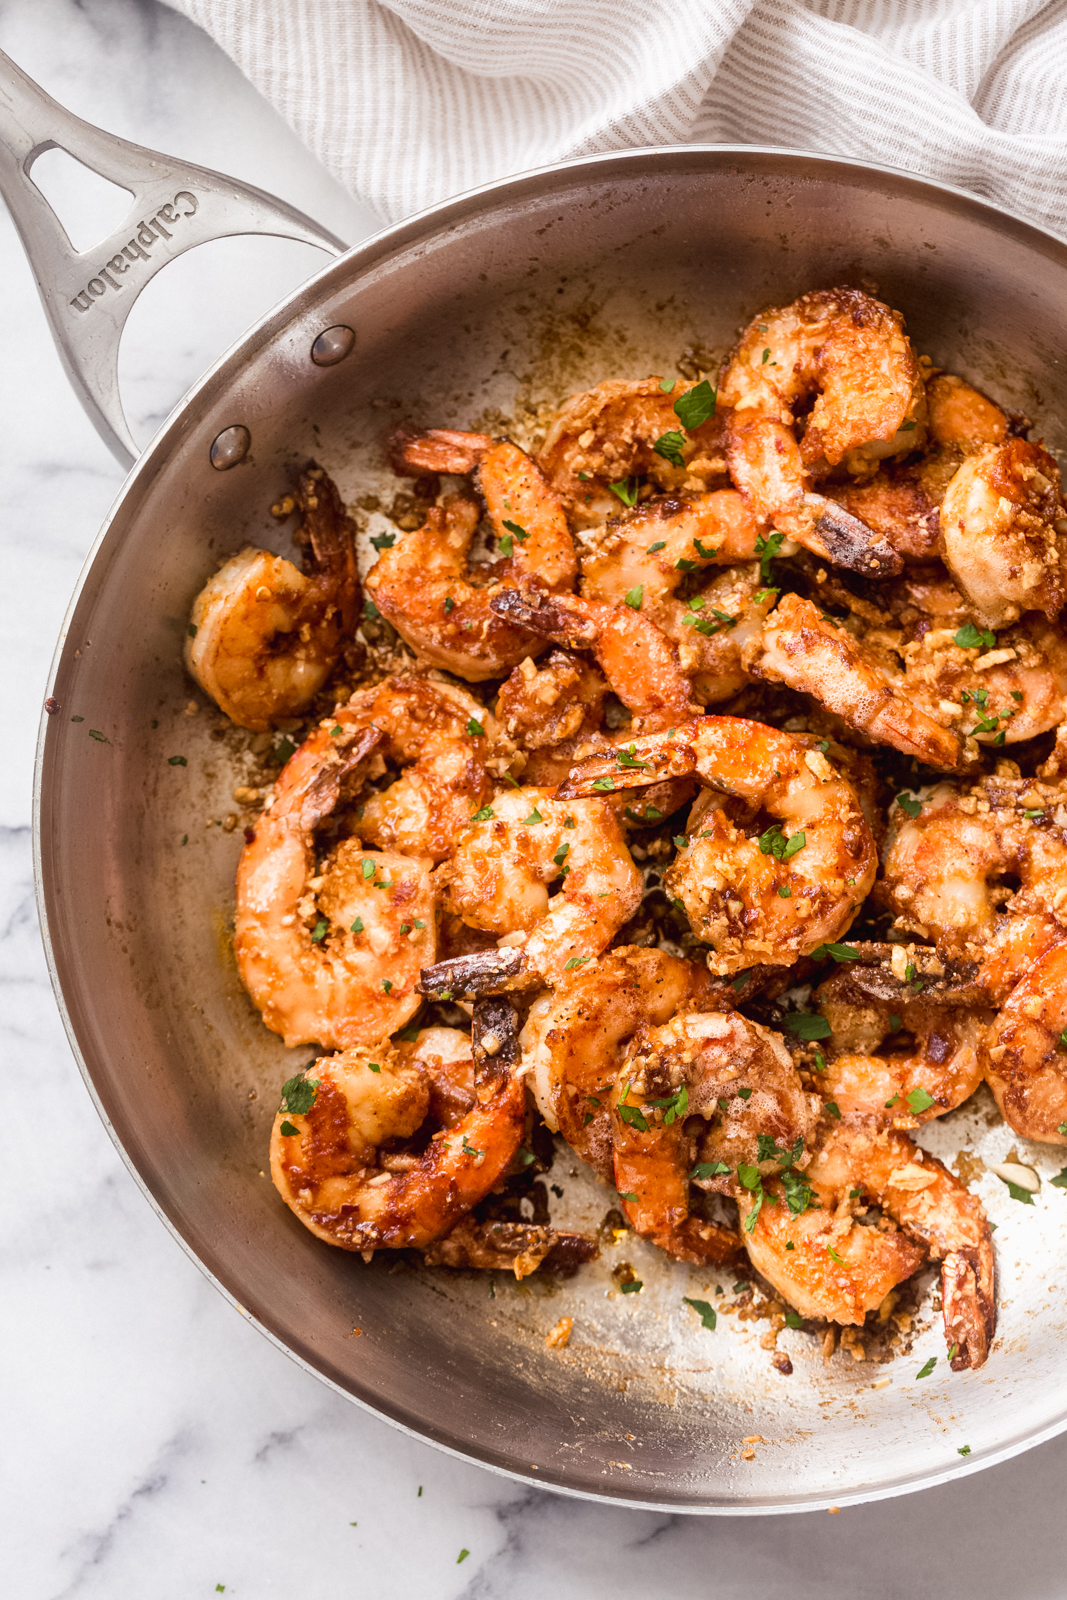 skillet with garlic butter tossed shrimp